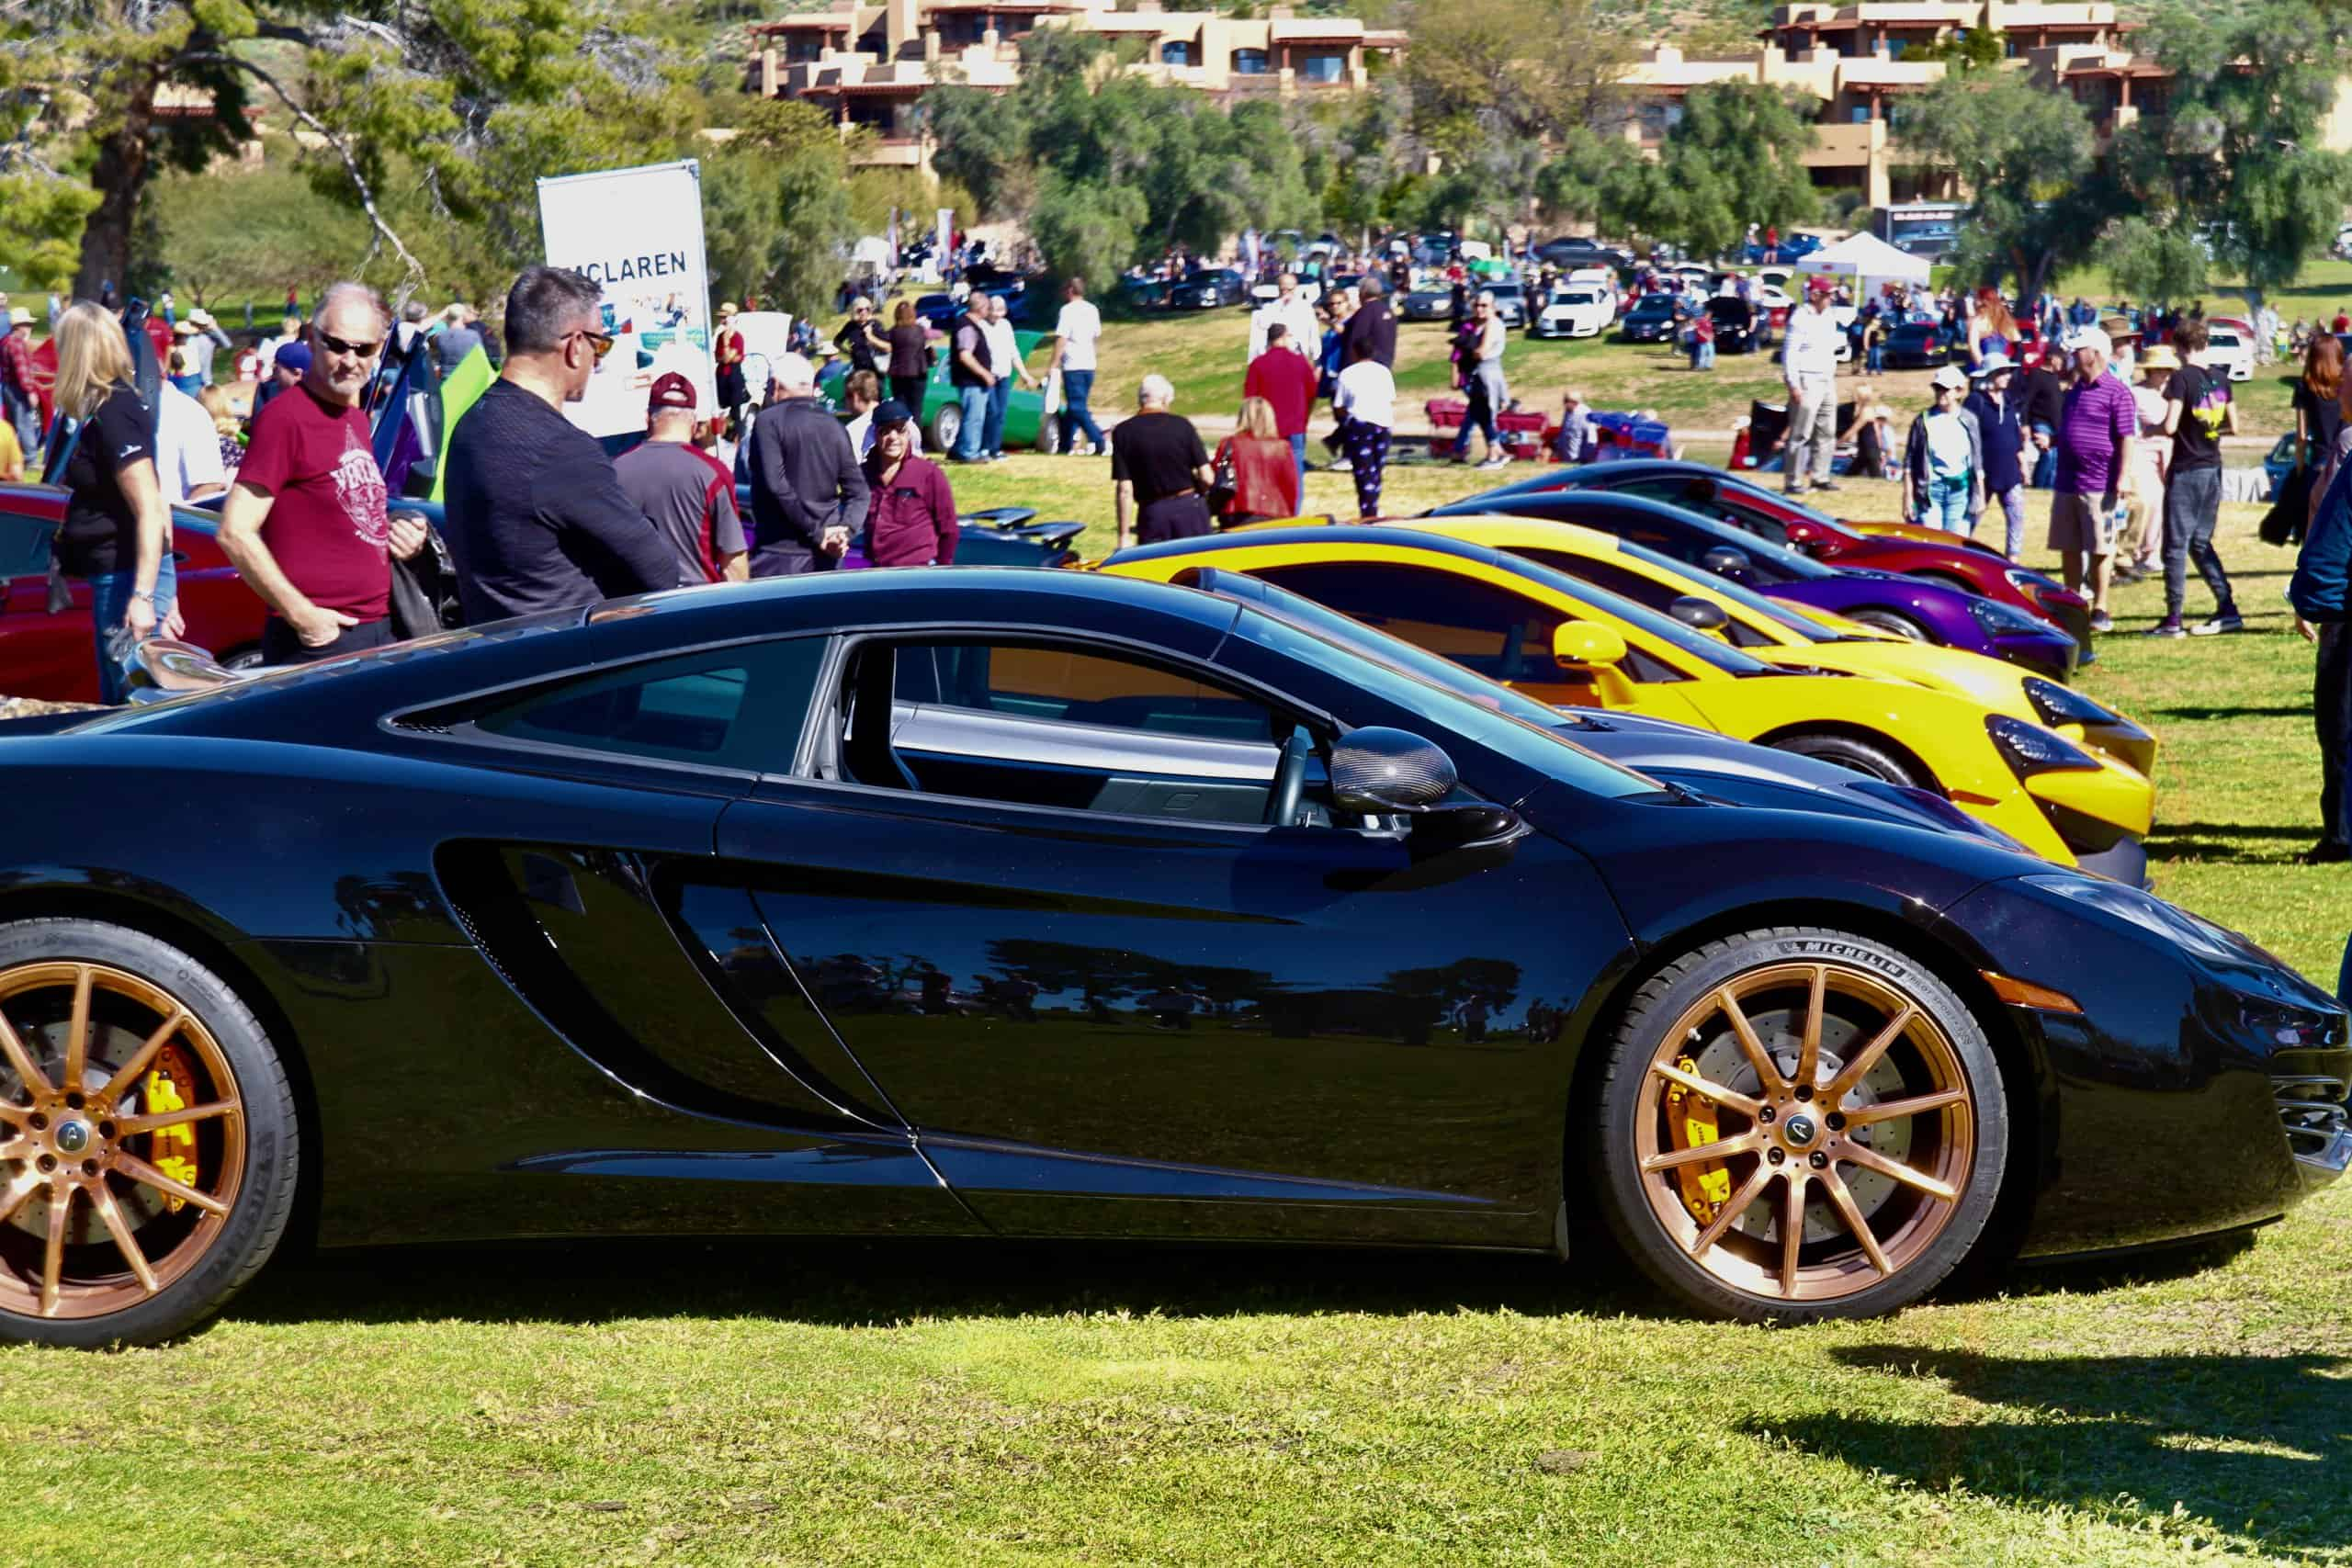 Concours, Bigger and bigger! Concours in the Hills continues growth, ClassicCars.com Journal